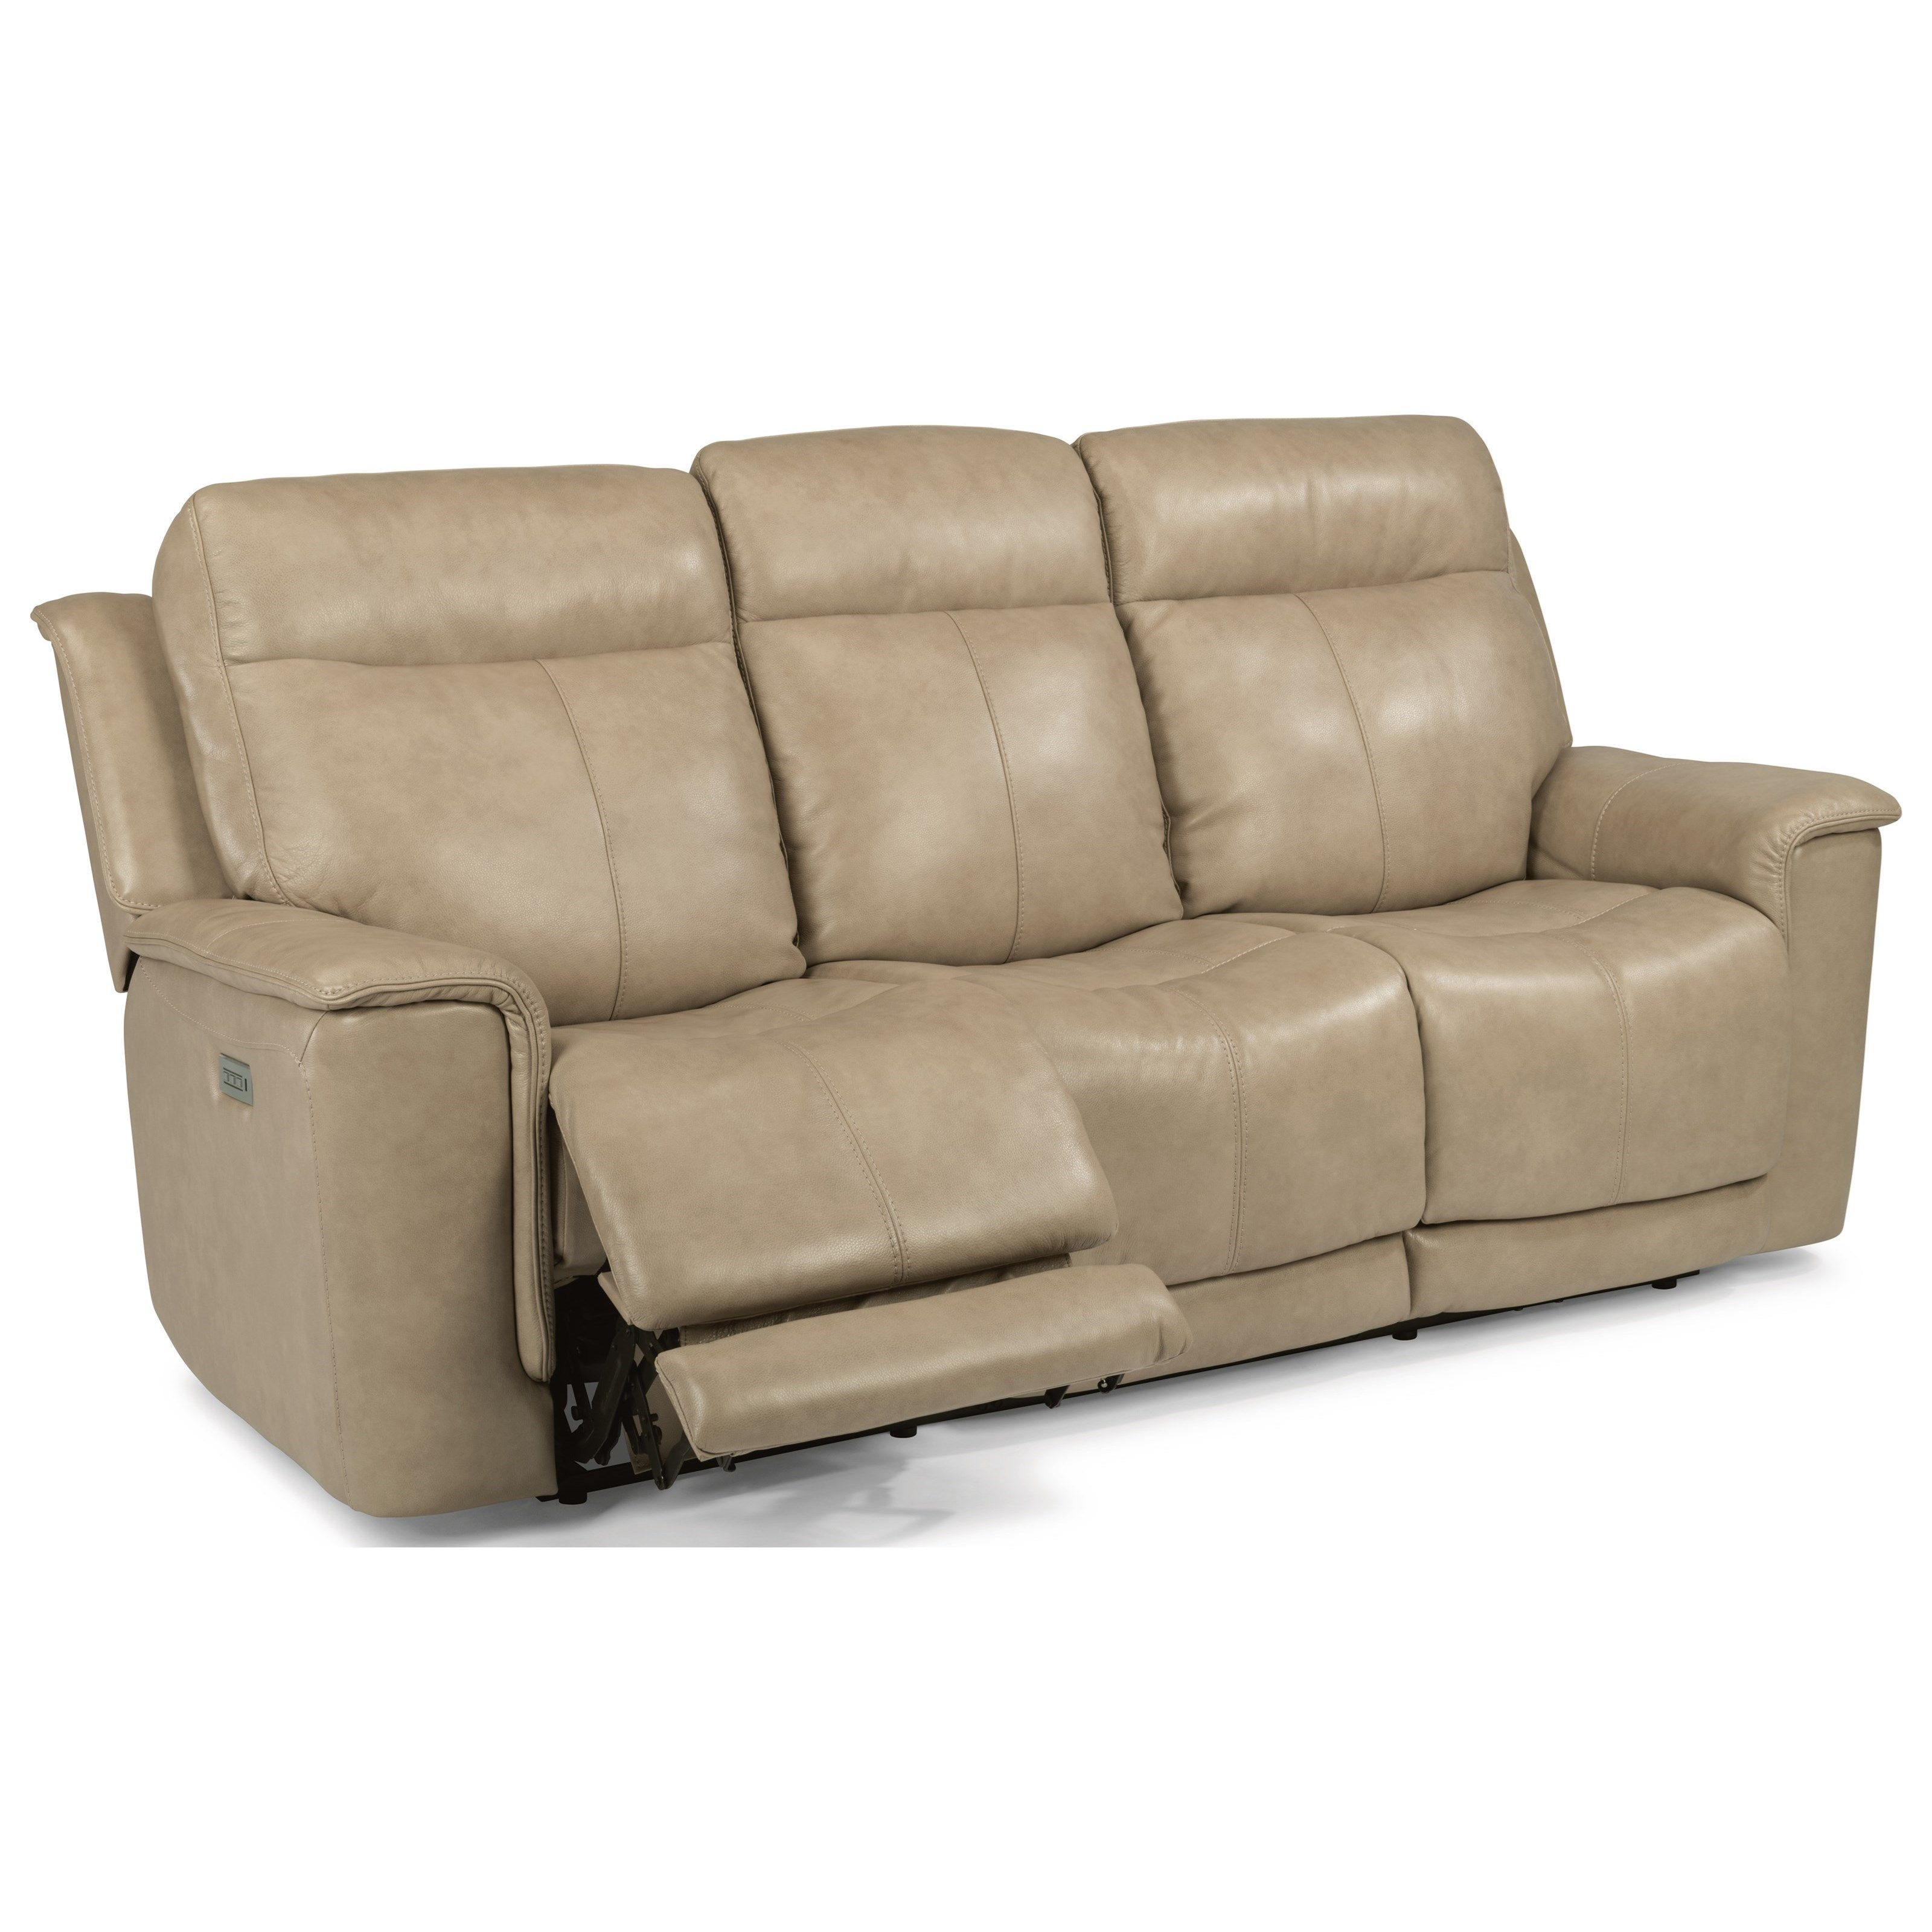 Clay Power Reclining Sofa With Power Headrests And Adjustable